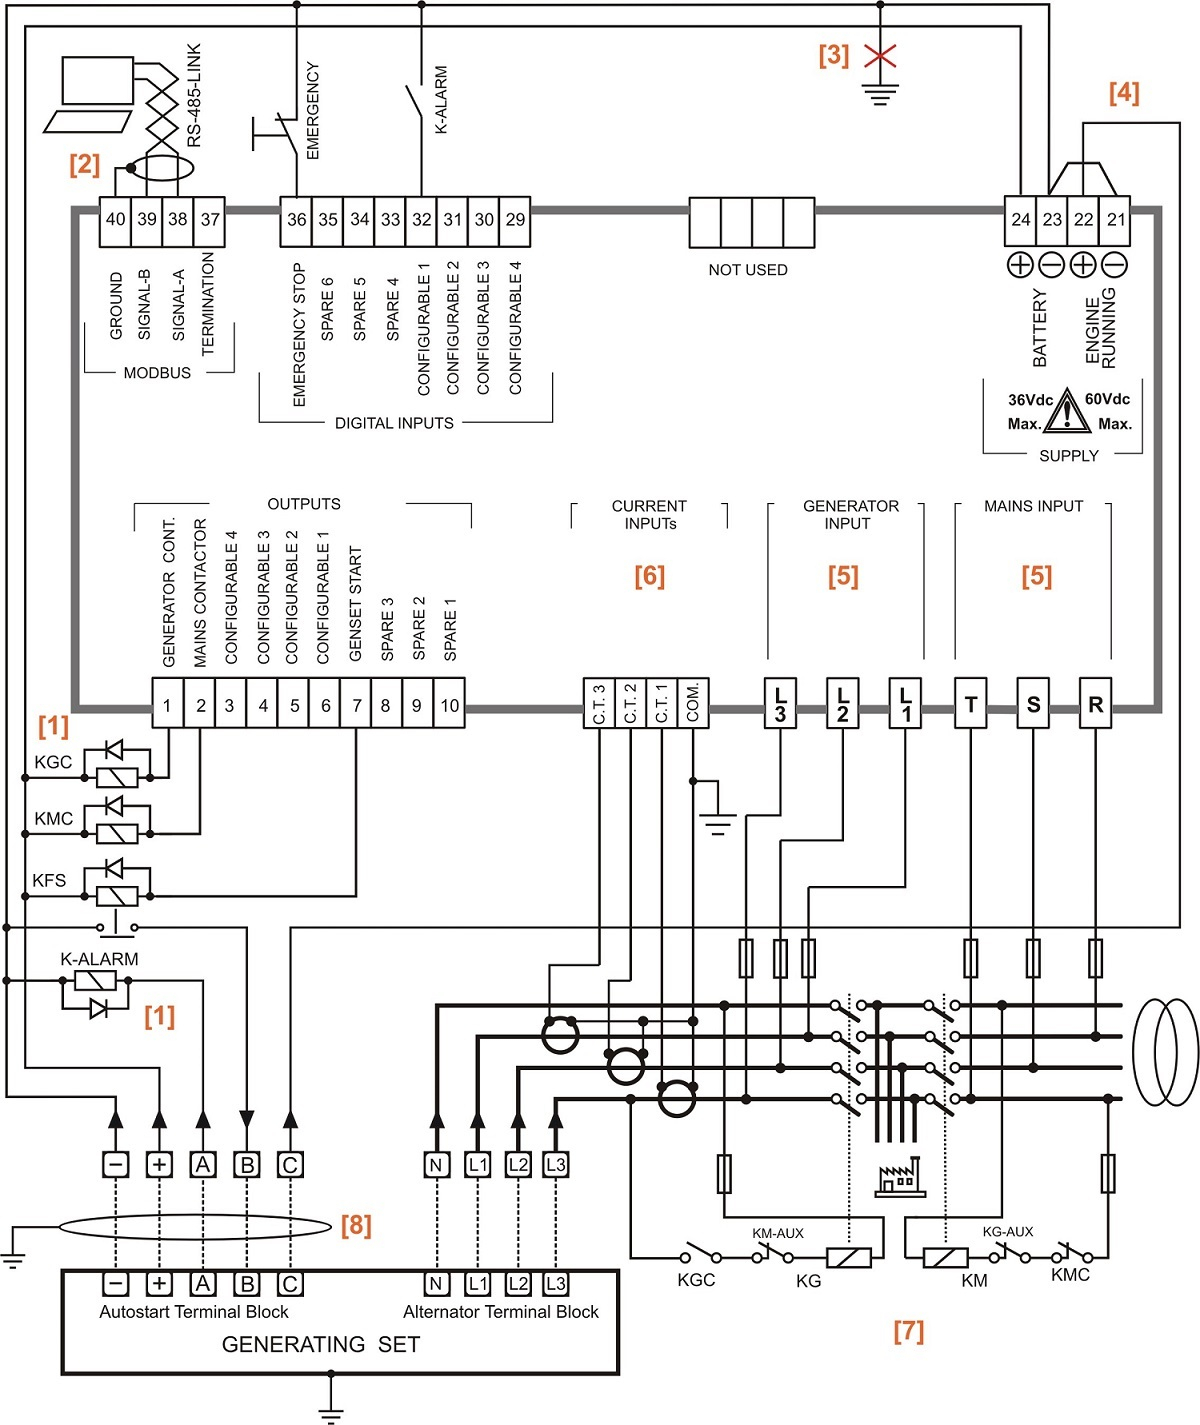 cutler hammer automatic transfer switch wiring diagram Collection-Wiring Diagram 30 Transfer Switch Air Pressor Wiring Diagram Autocad Generac Automatic Transfer Switch Wiring 9-c